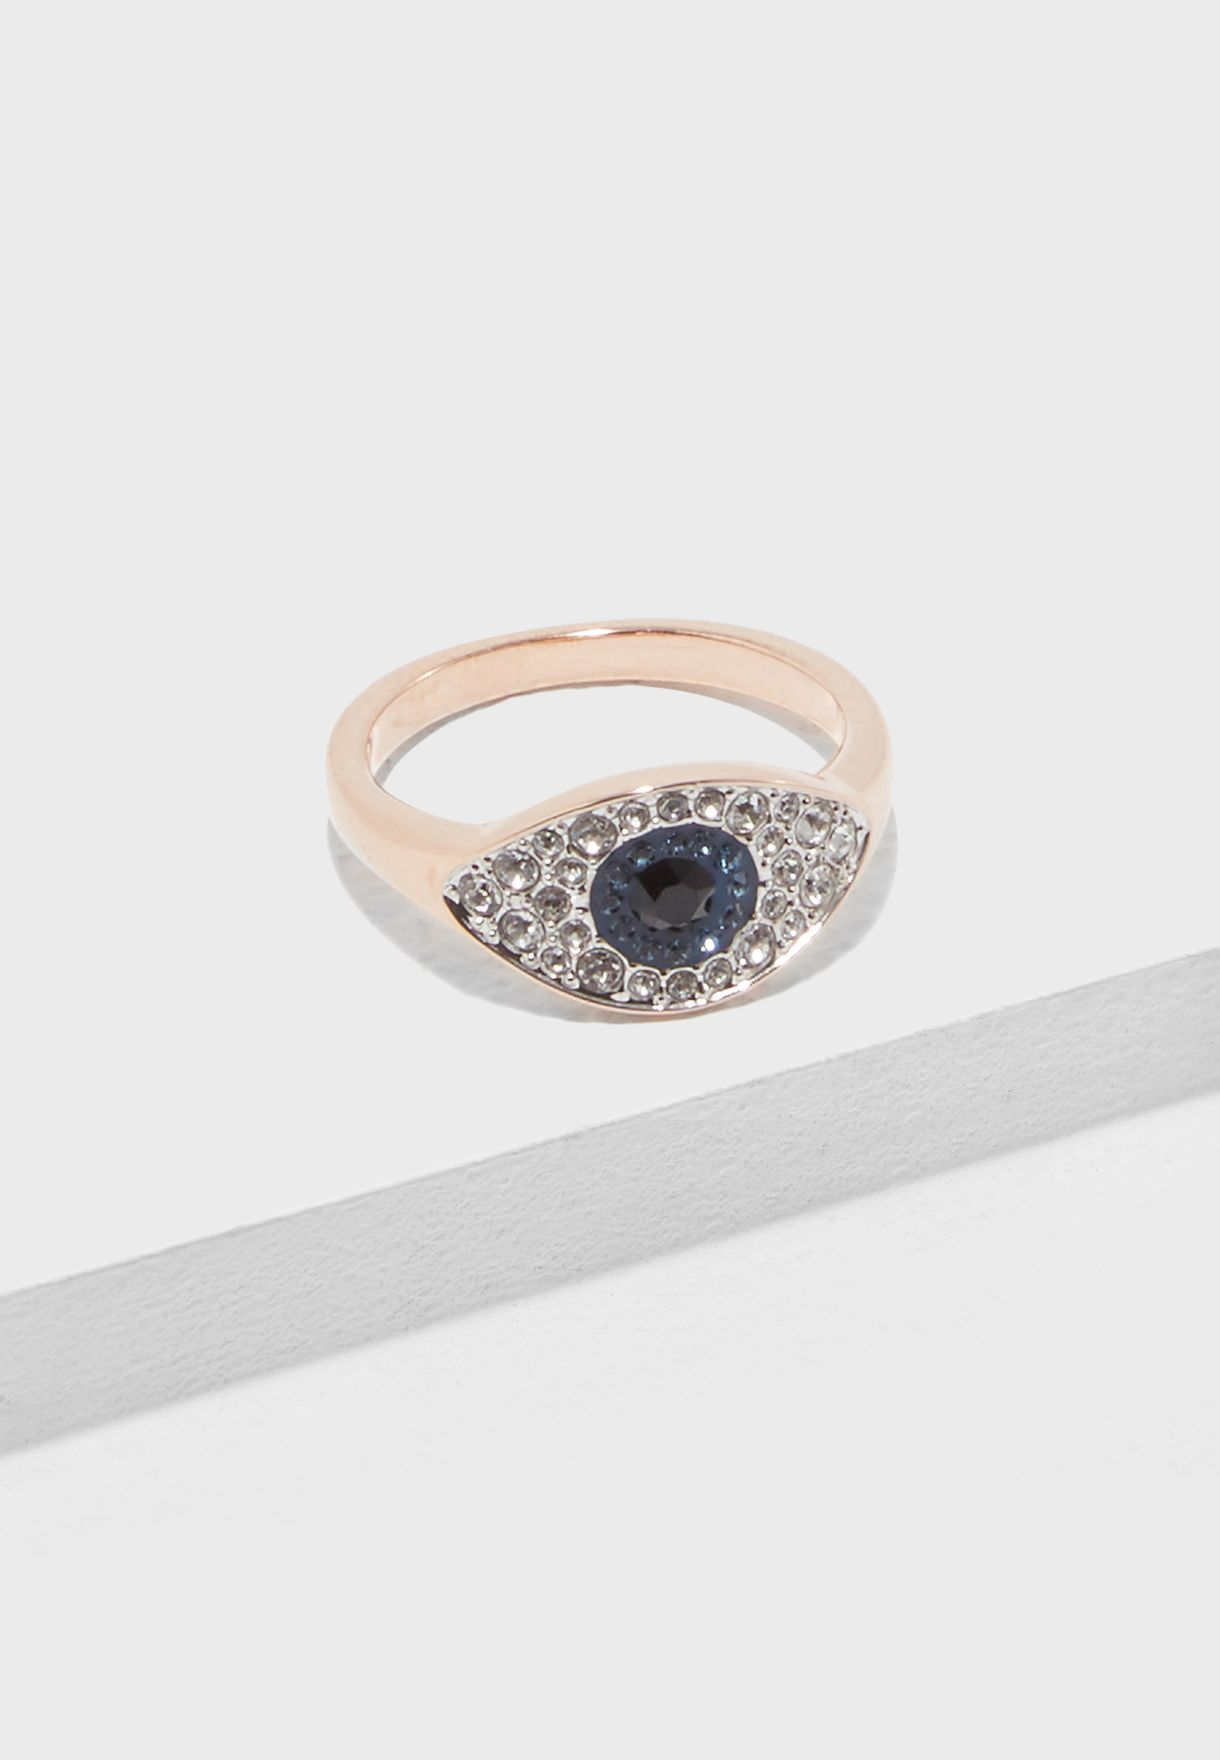 4d7d76712ea1 Shop Swarovski gold Duo Pe Evil Eye Ring 5425858 5441193 5441202 ...